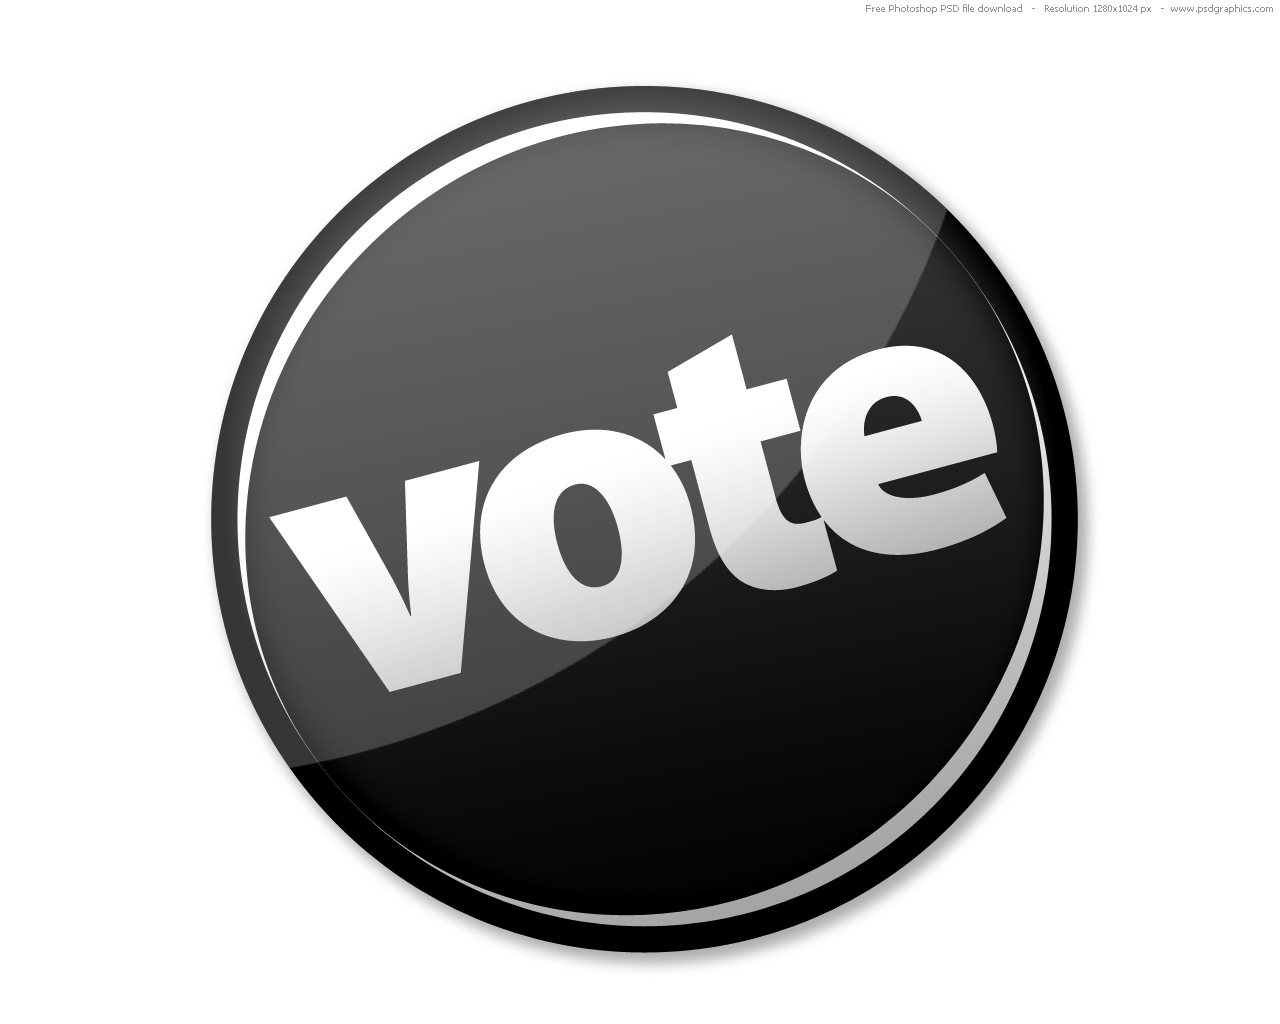 Photoshop empty and vote buttons | PSDGraphics